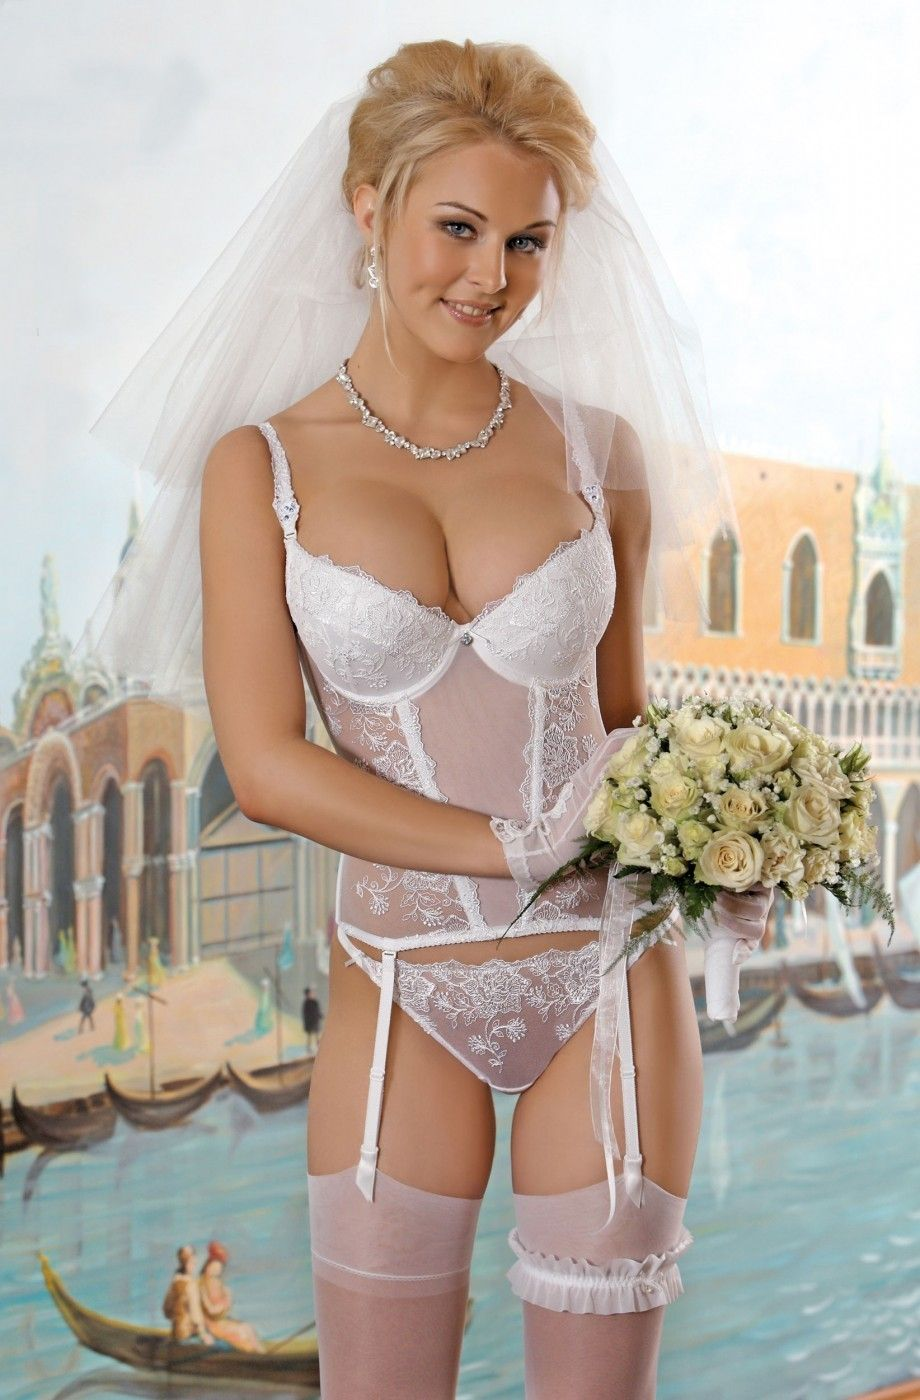 Think, that Brides stocking tops exposed share your